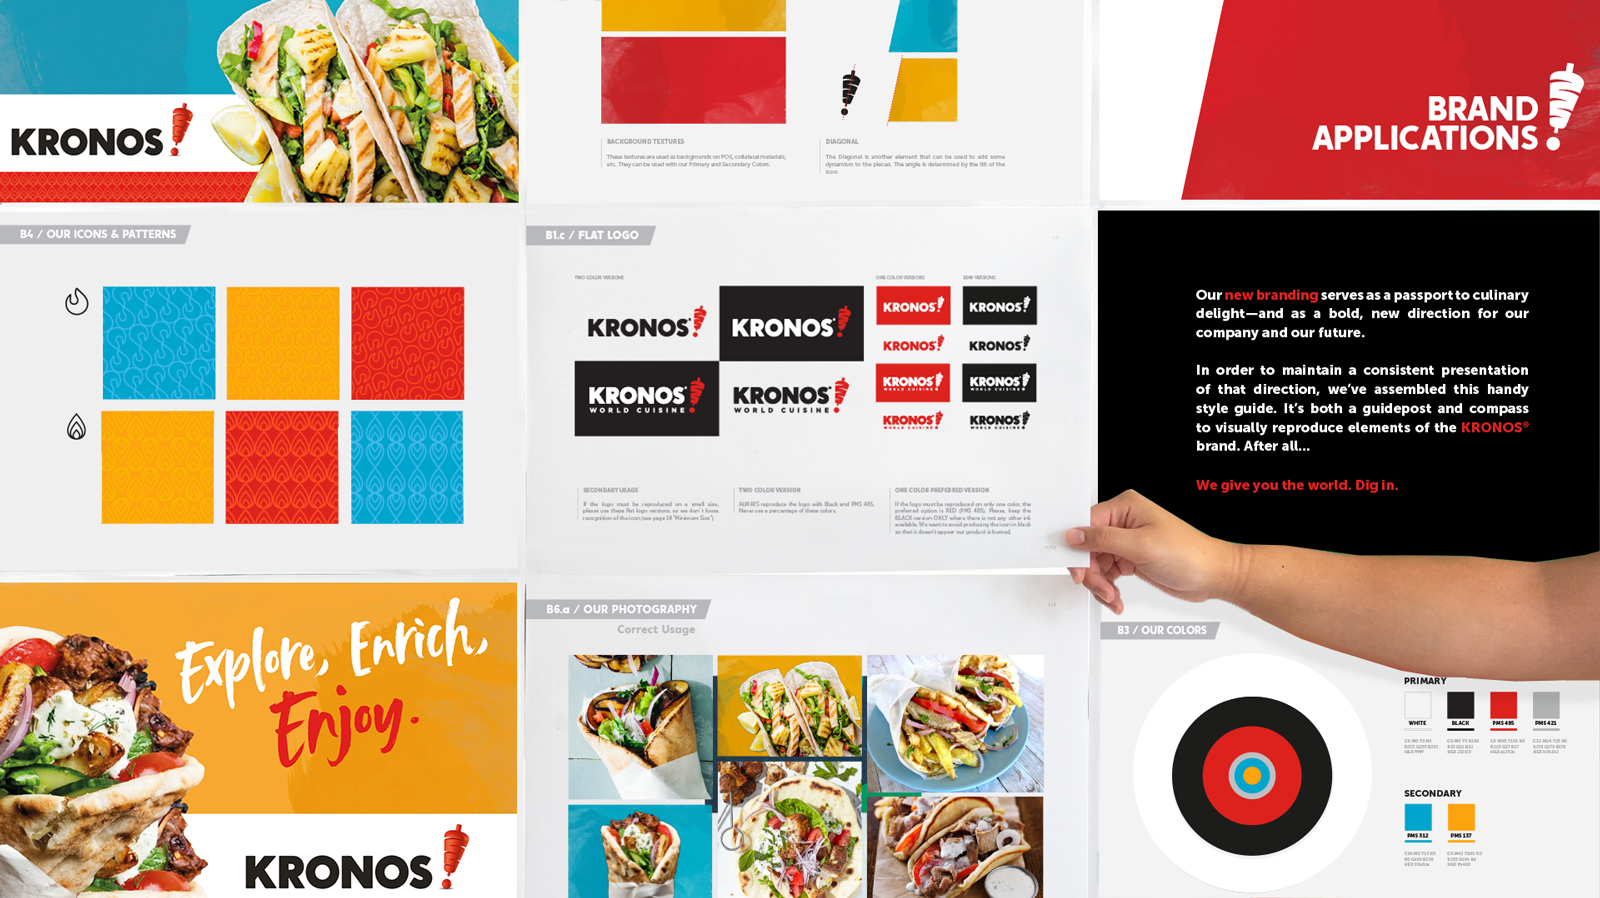 Brand Style Guide development for Kronos after brand/logo refresh